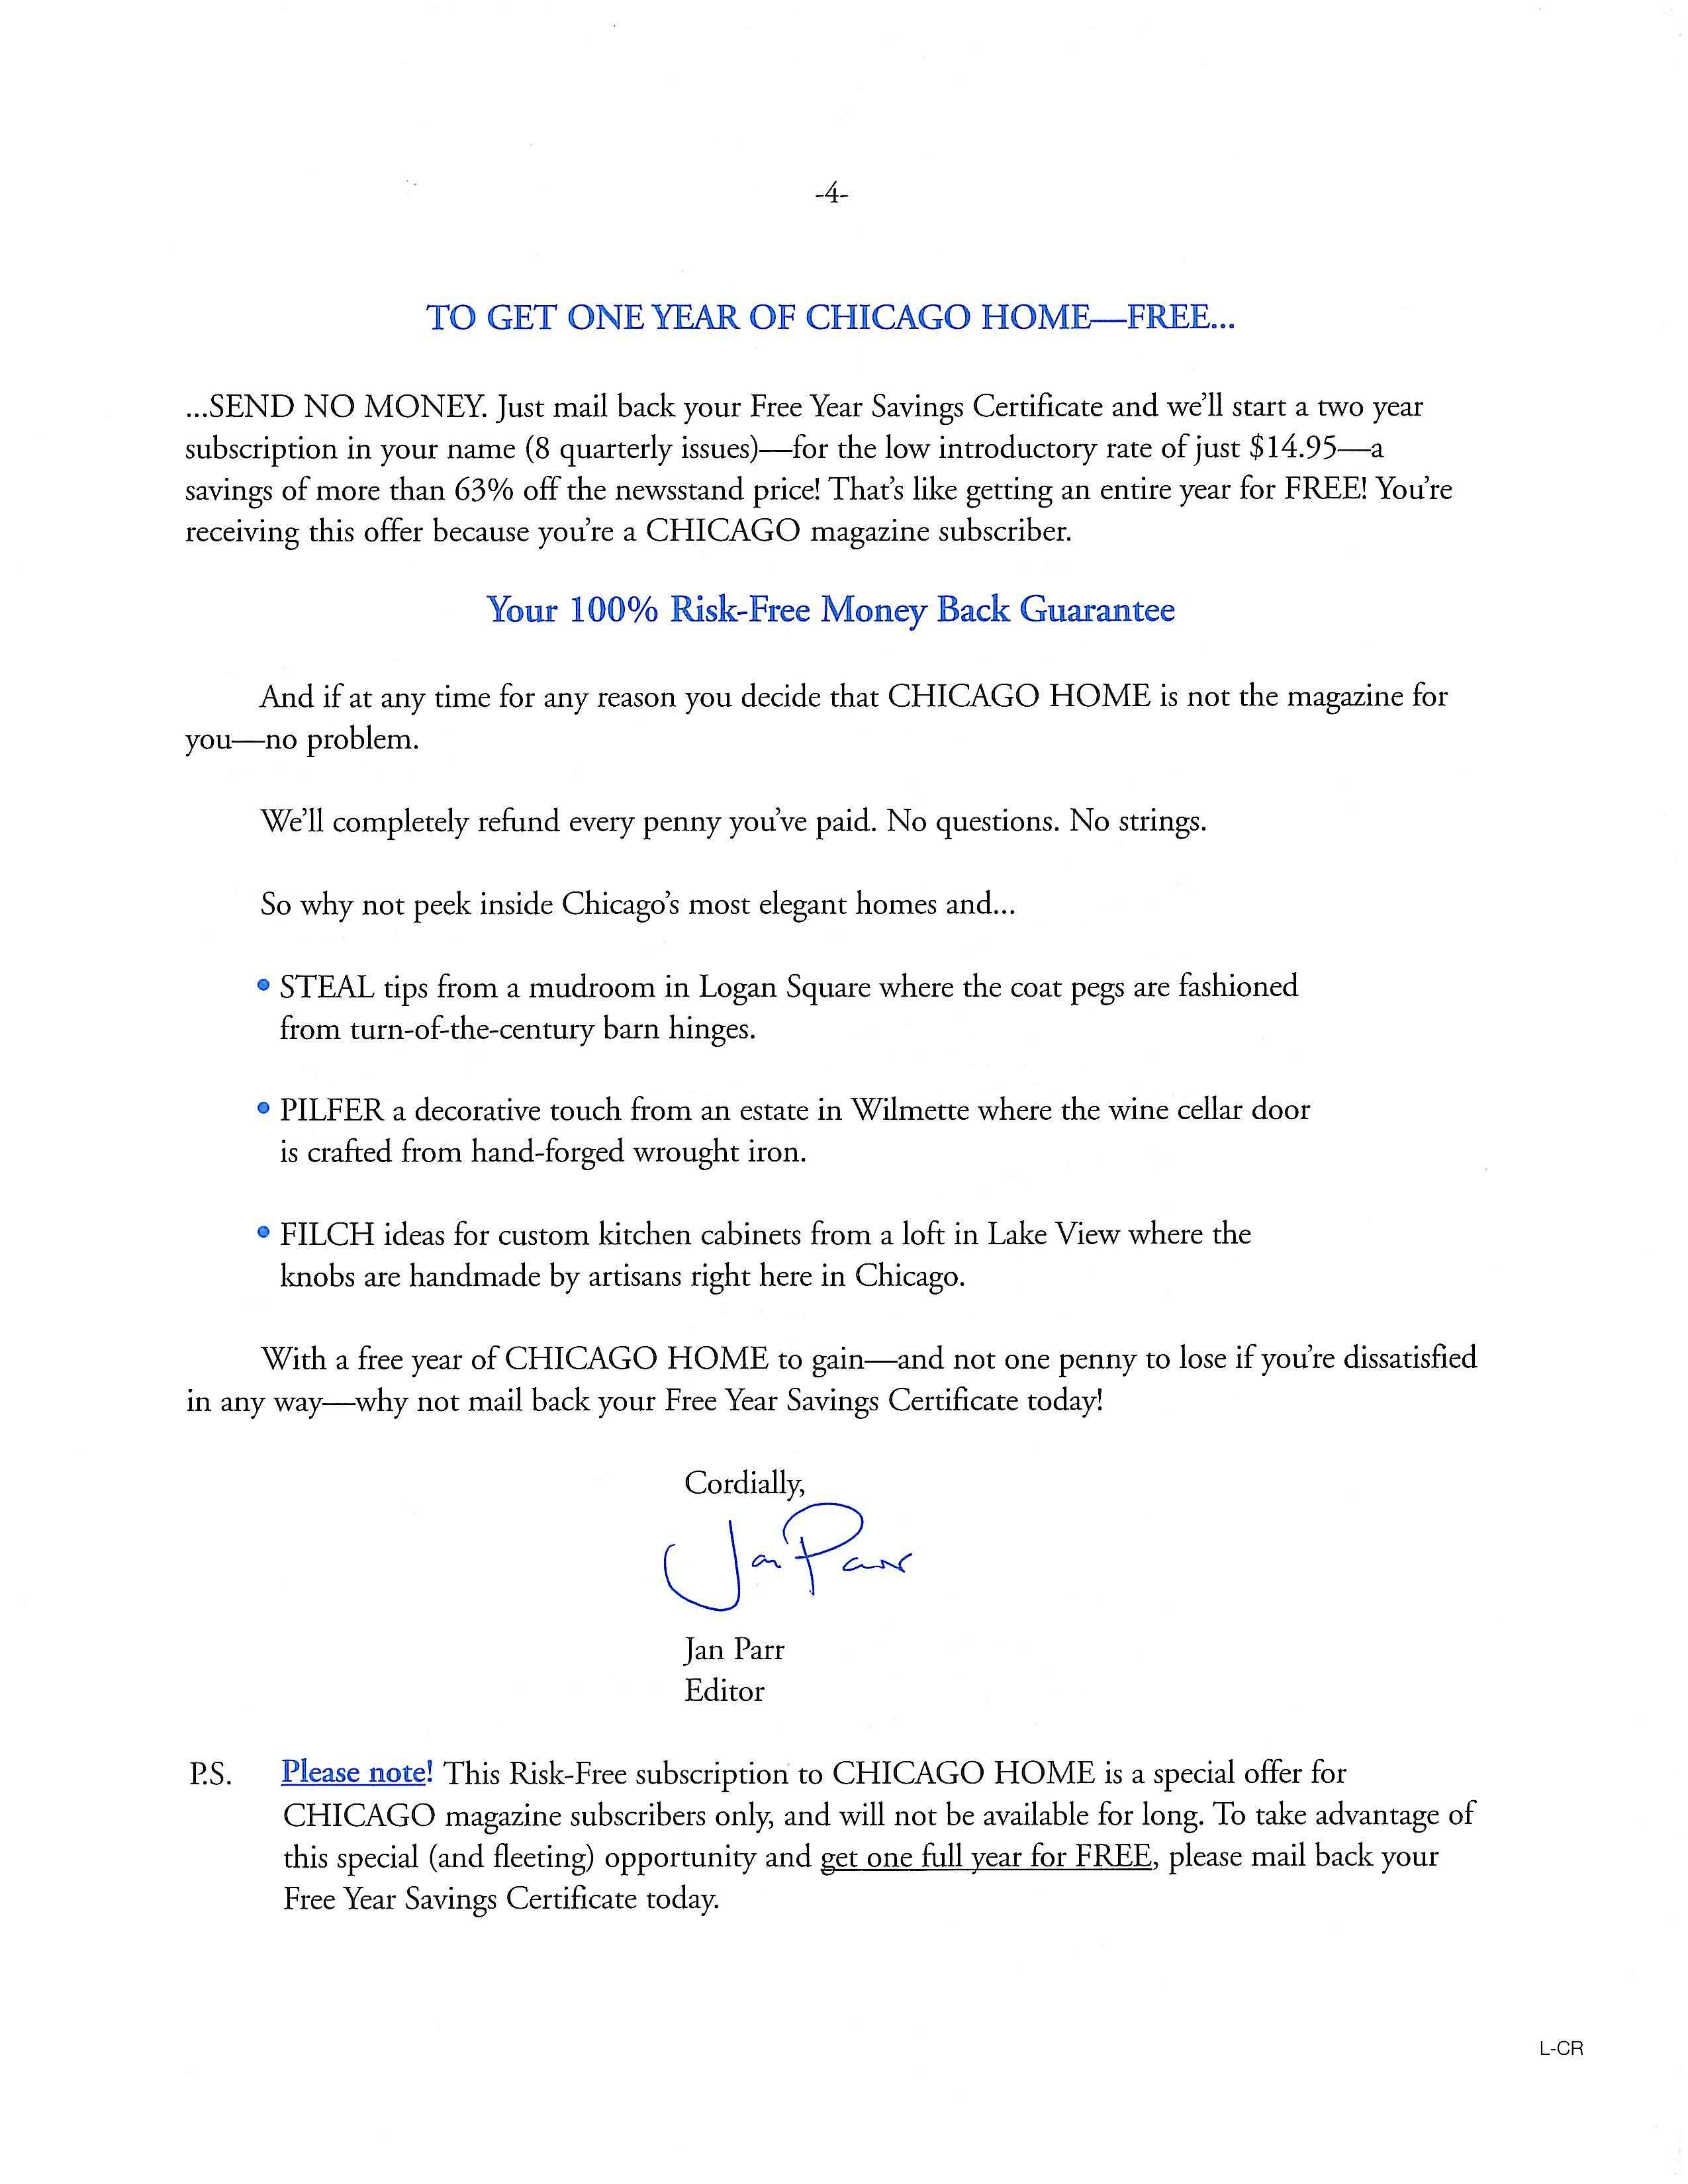 image of Chicago Home direct mail sales letter page 4